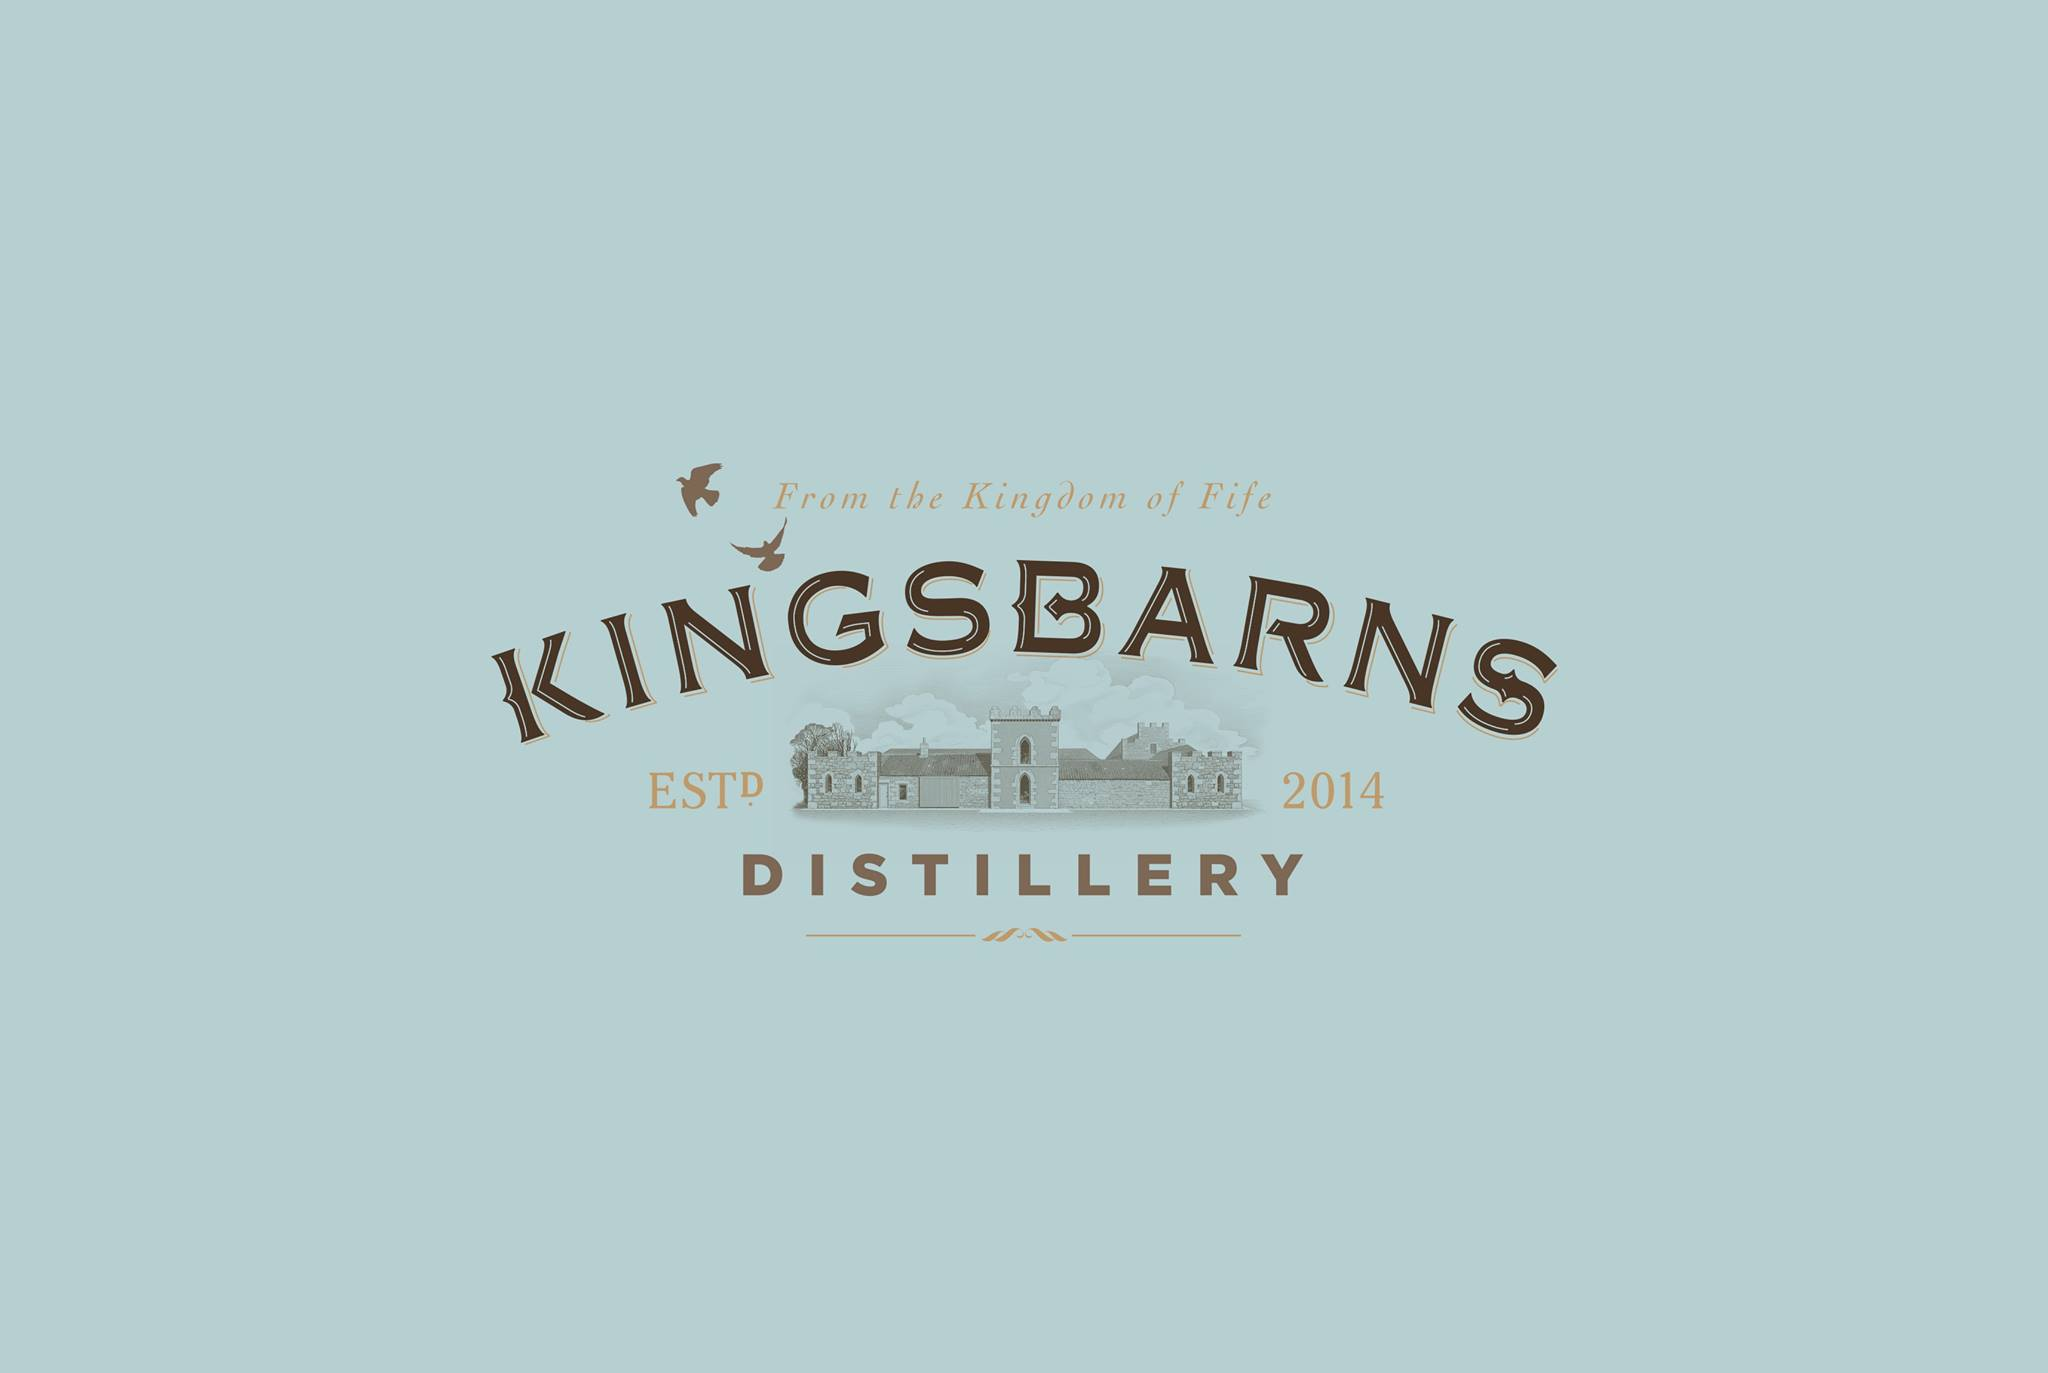 kingsbarns_logo.jpg